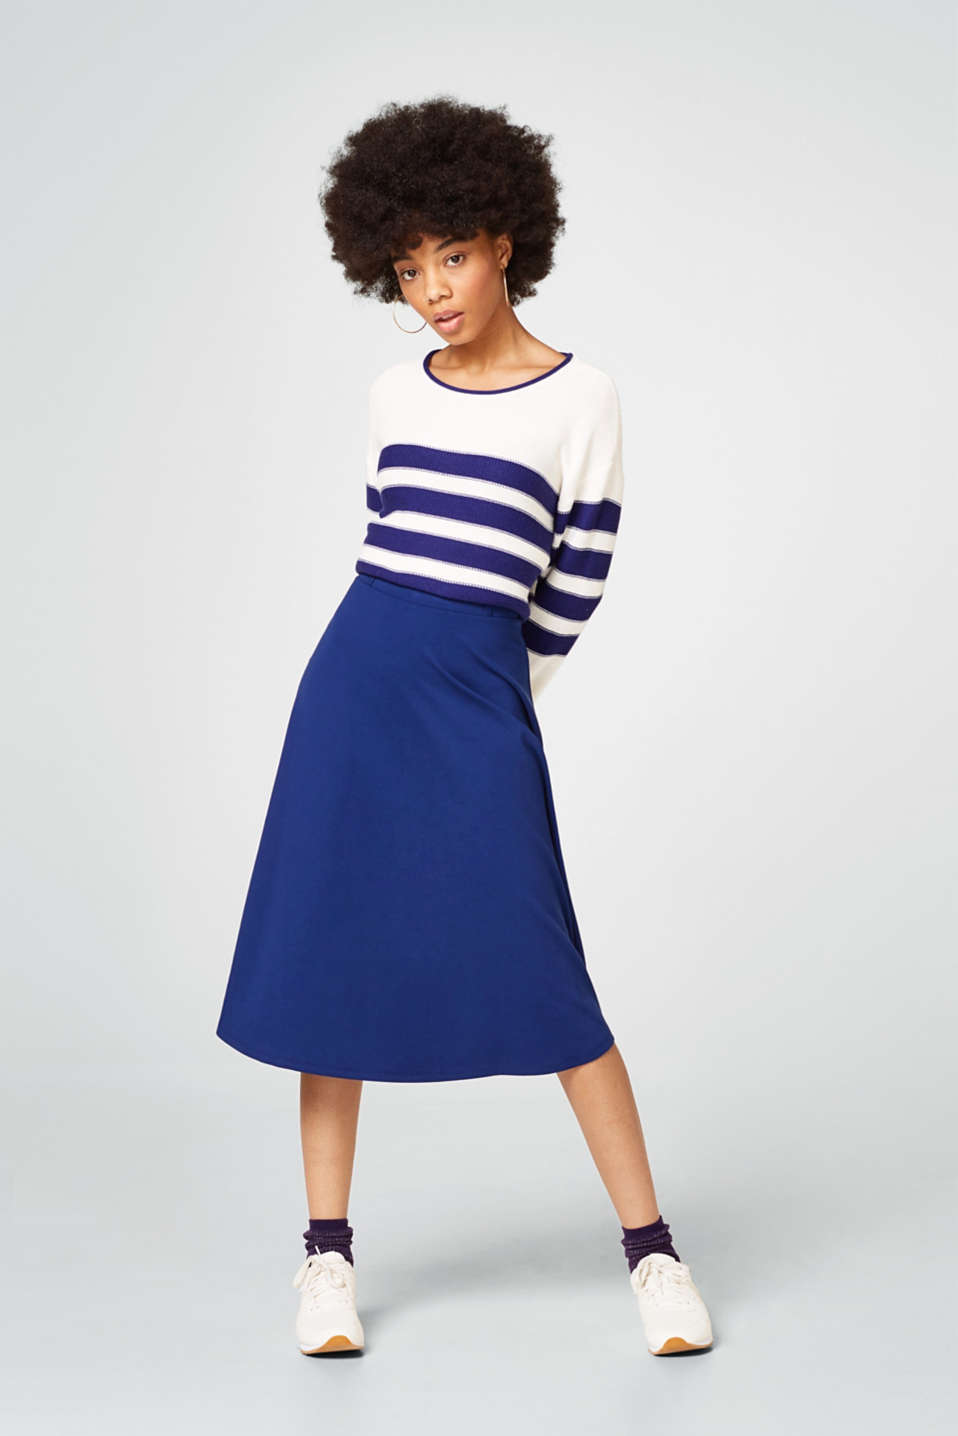 Swirling stretch jersey skirt with an elasticated waistband